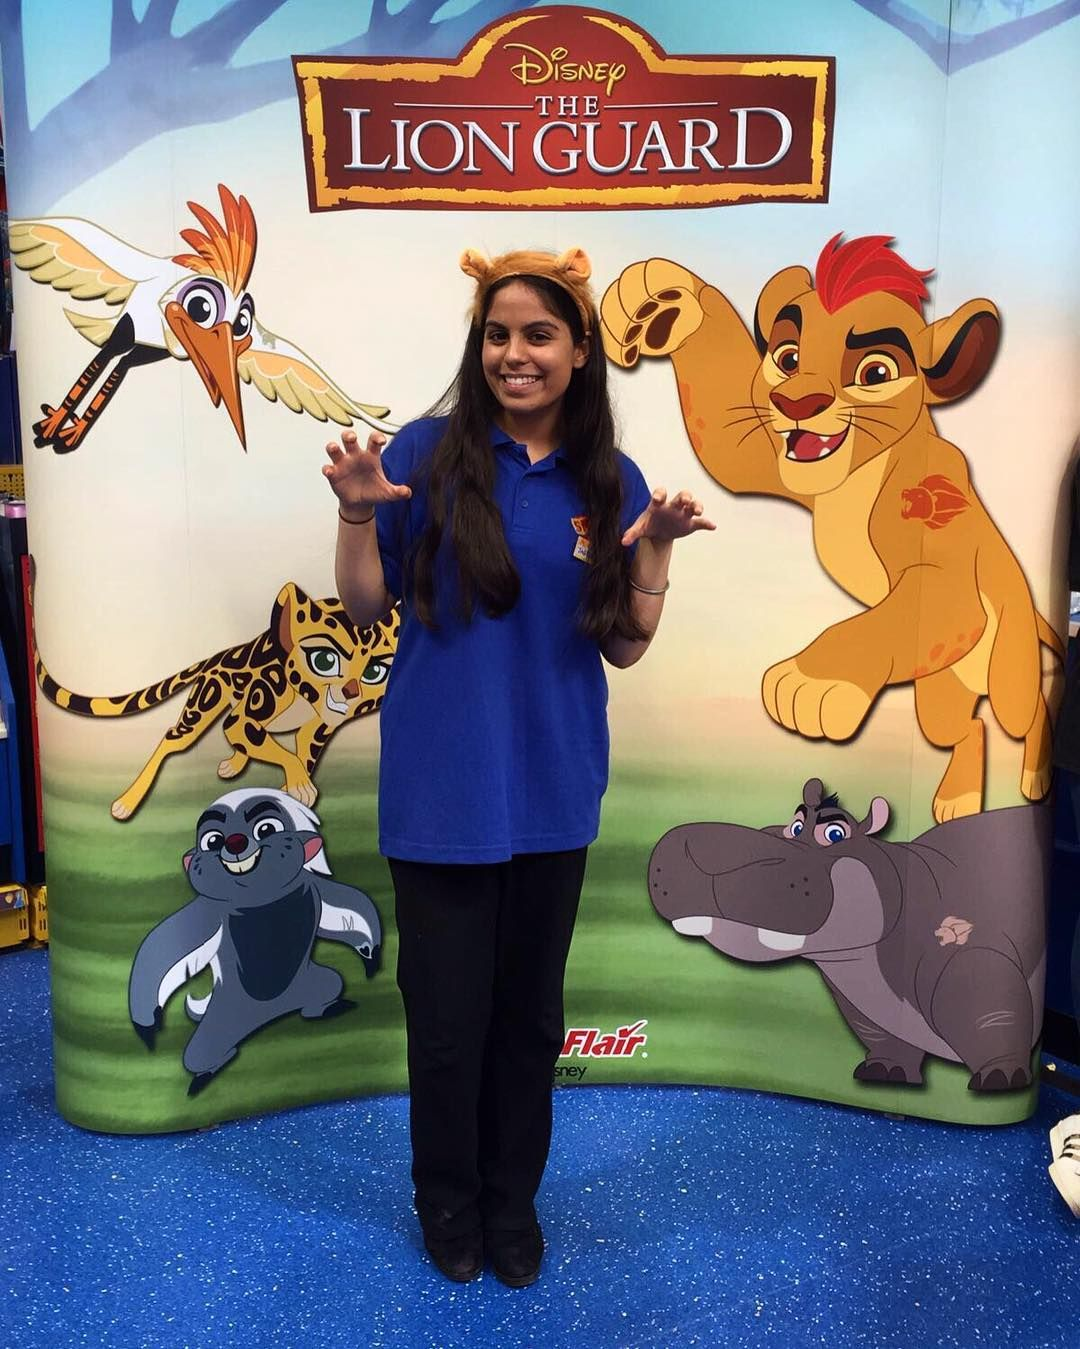 Our #Oldbury staff had a blast celebrating the Lion Guard launch in-store today!  #smyths #smythstoys #smythstoyssuperstores #sundayfunday #thelionguard #thelionking #disney #weekendfun #Toystagram #heyletsplay